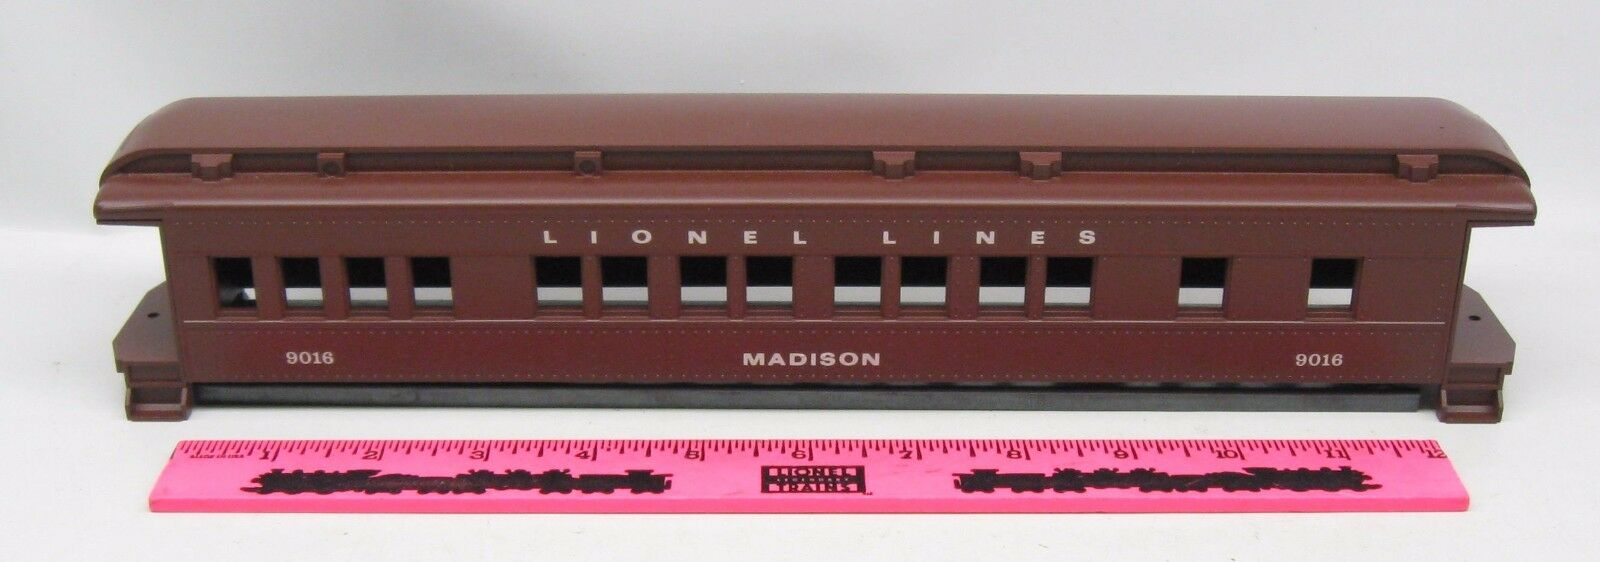 Lionel shell  9016 Lionel Lines  Madison  passenger shell with frame and ends